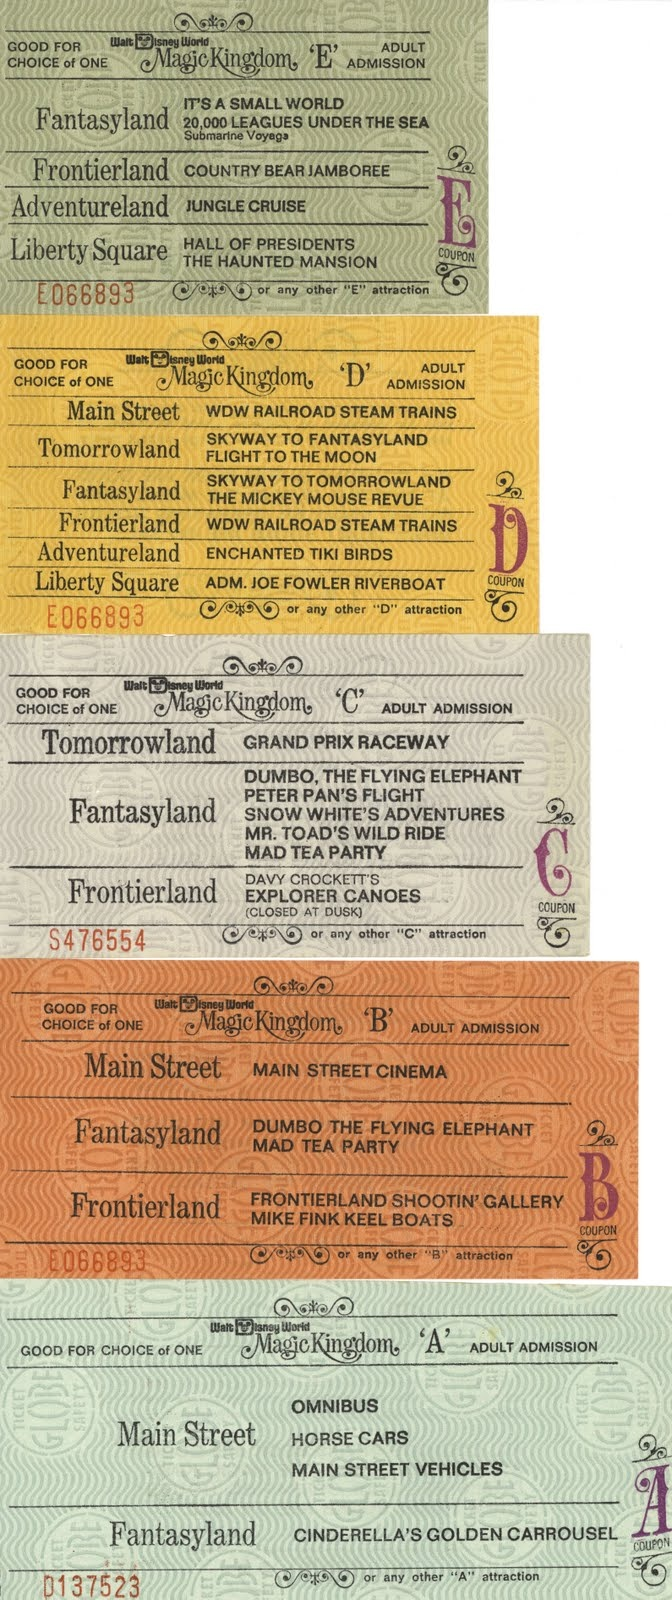 photos of Disneyland - ride tickets 1972....I so remember those...always ran out of good ride tickets